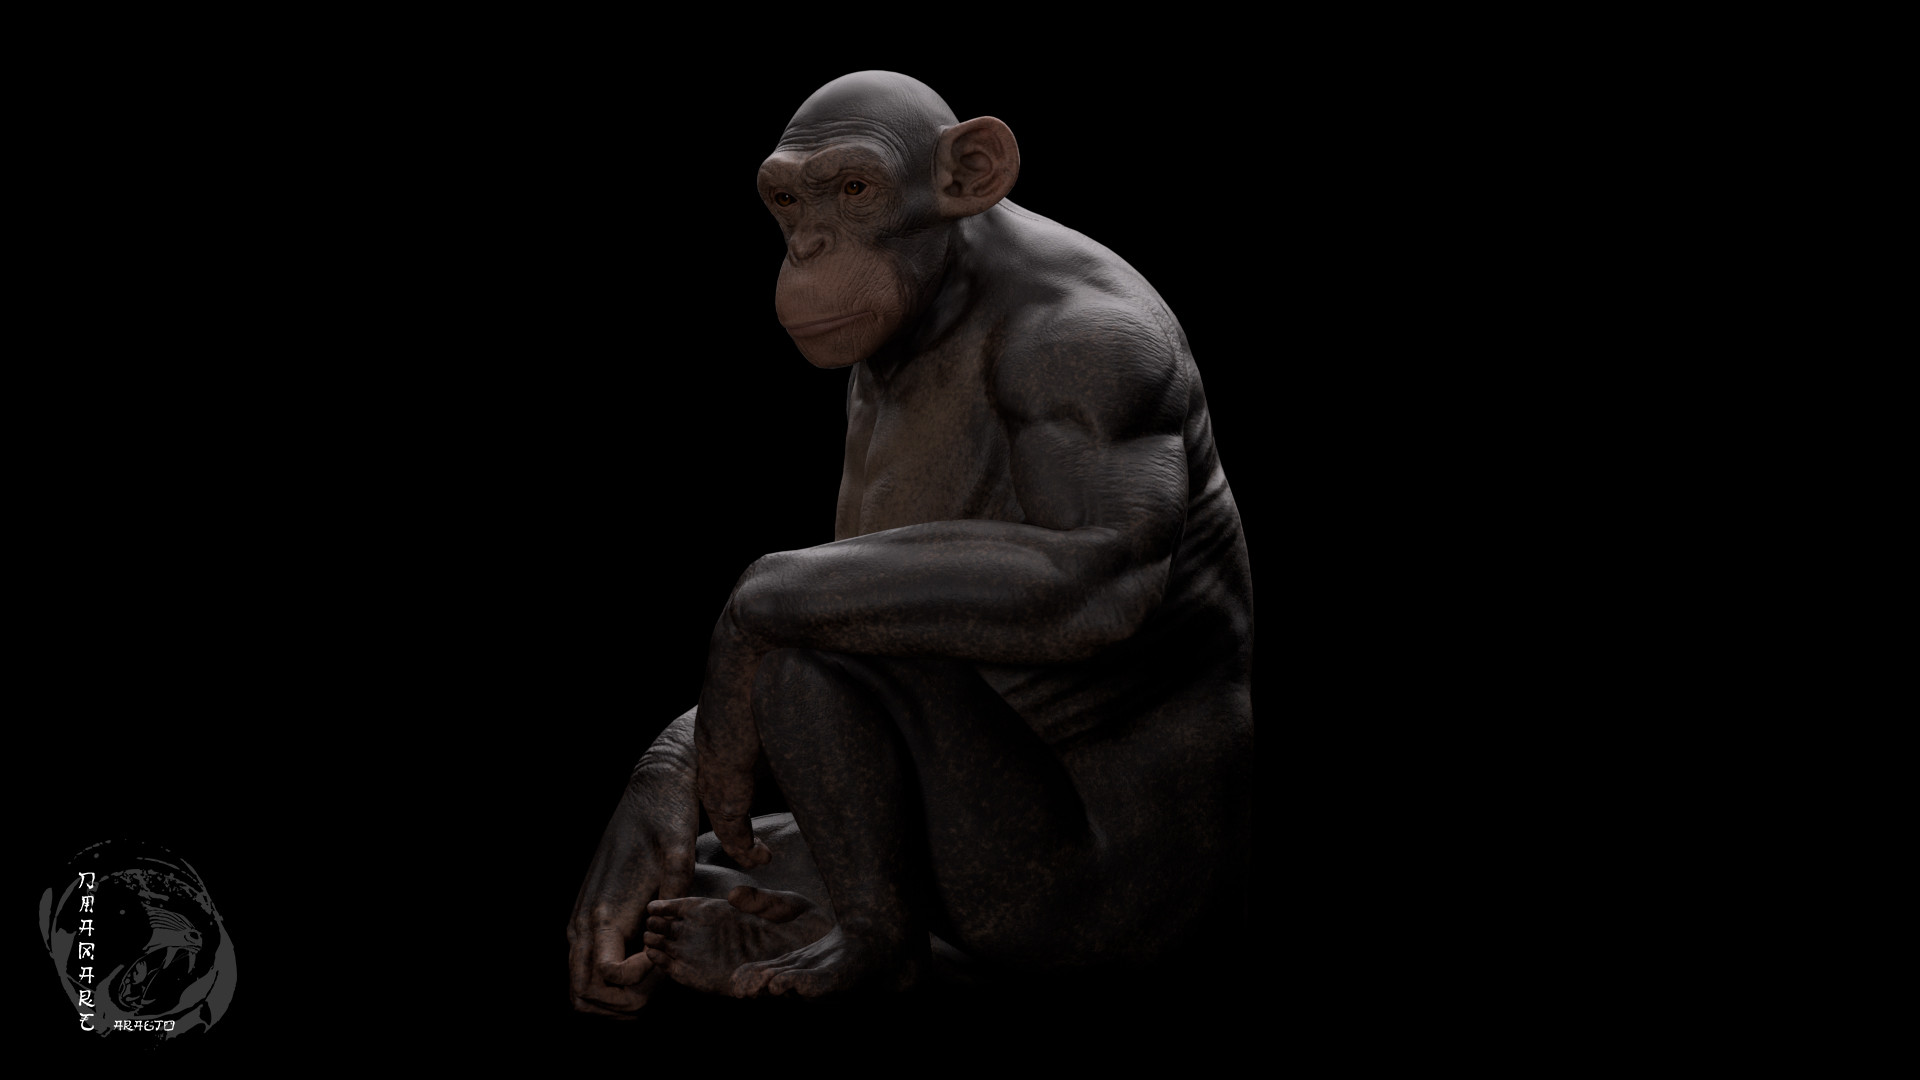 Dimax esteban araujo chimp render3